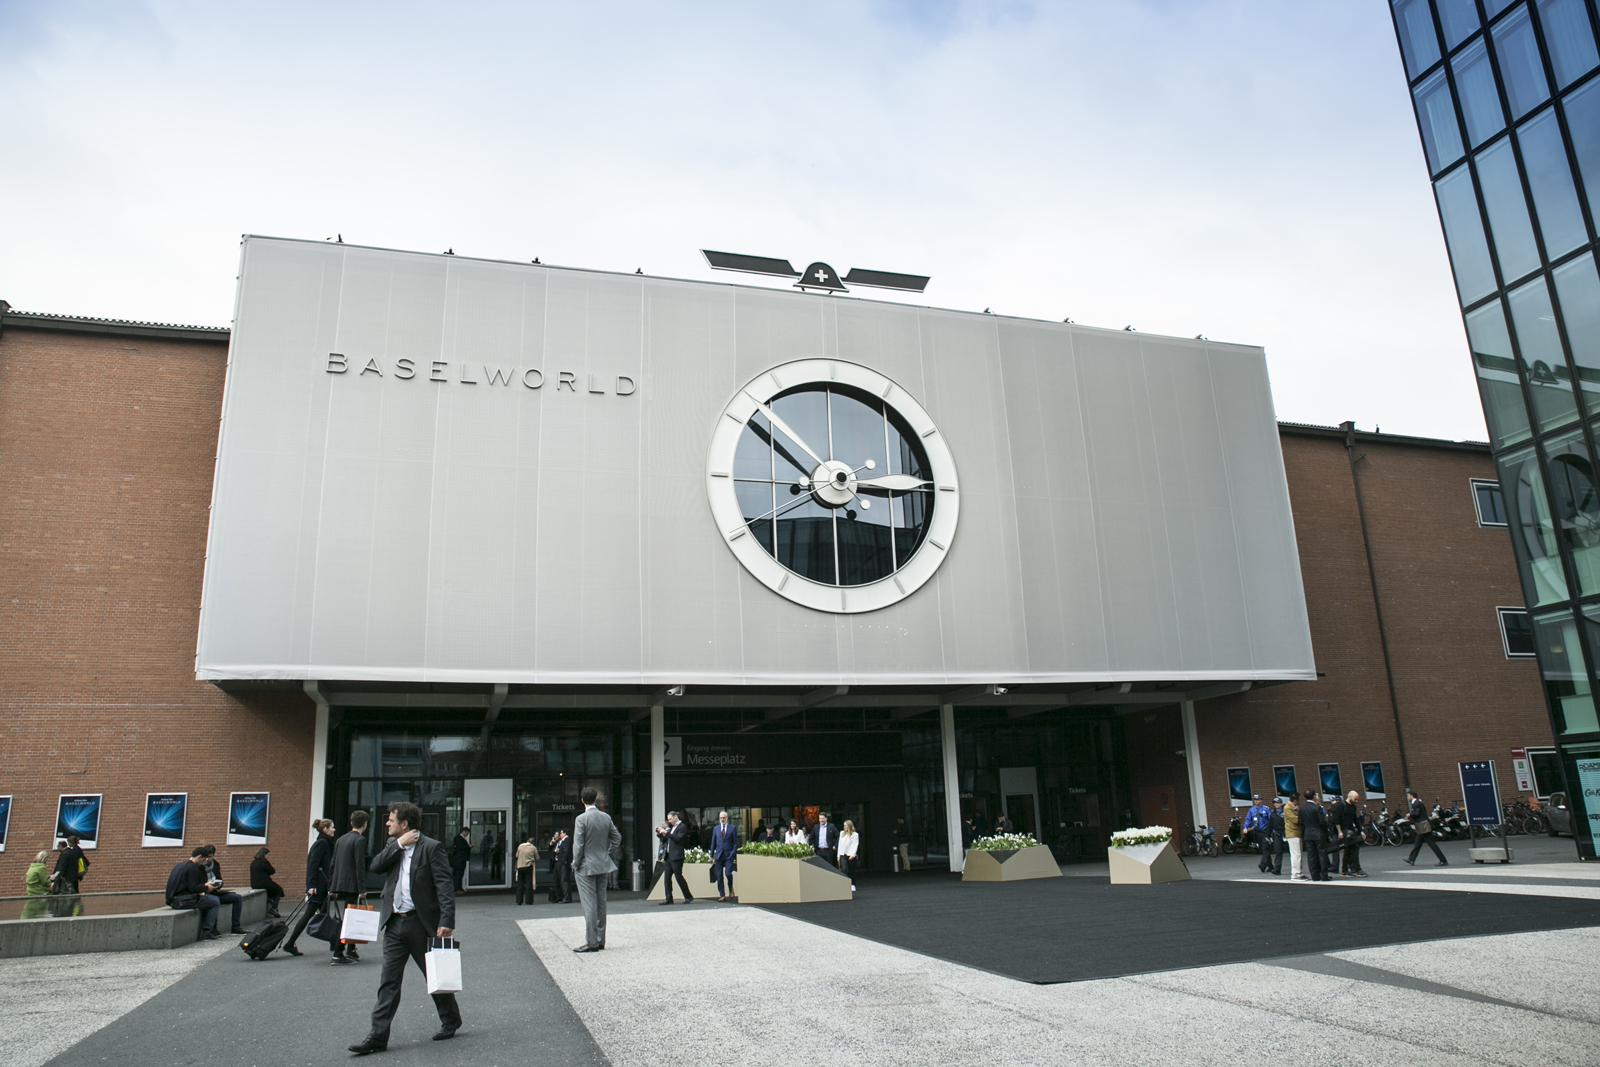 BASELWORLD 2010 | Conclusioni